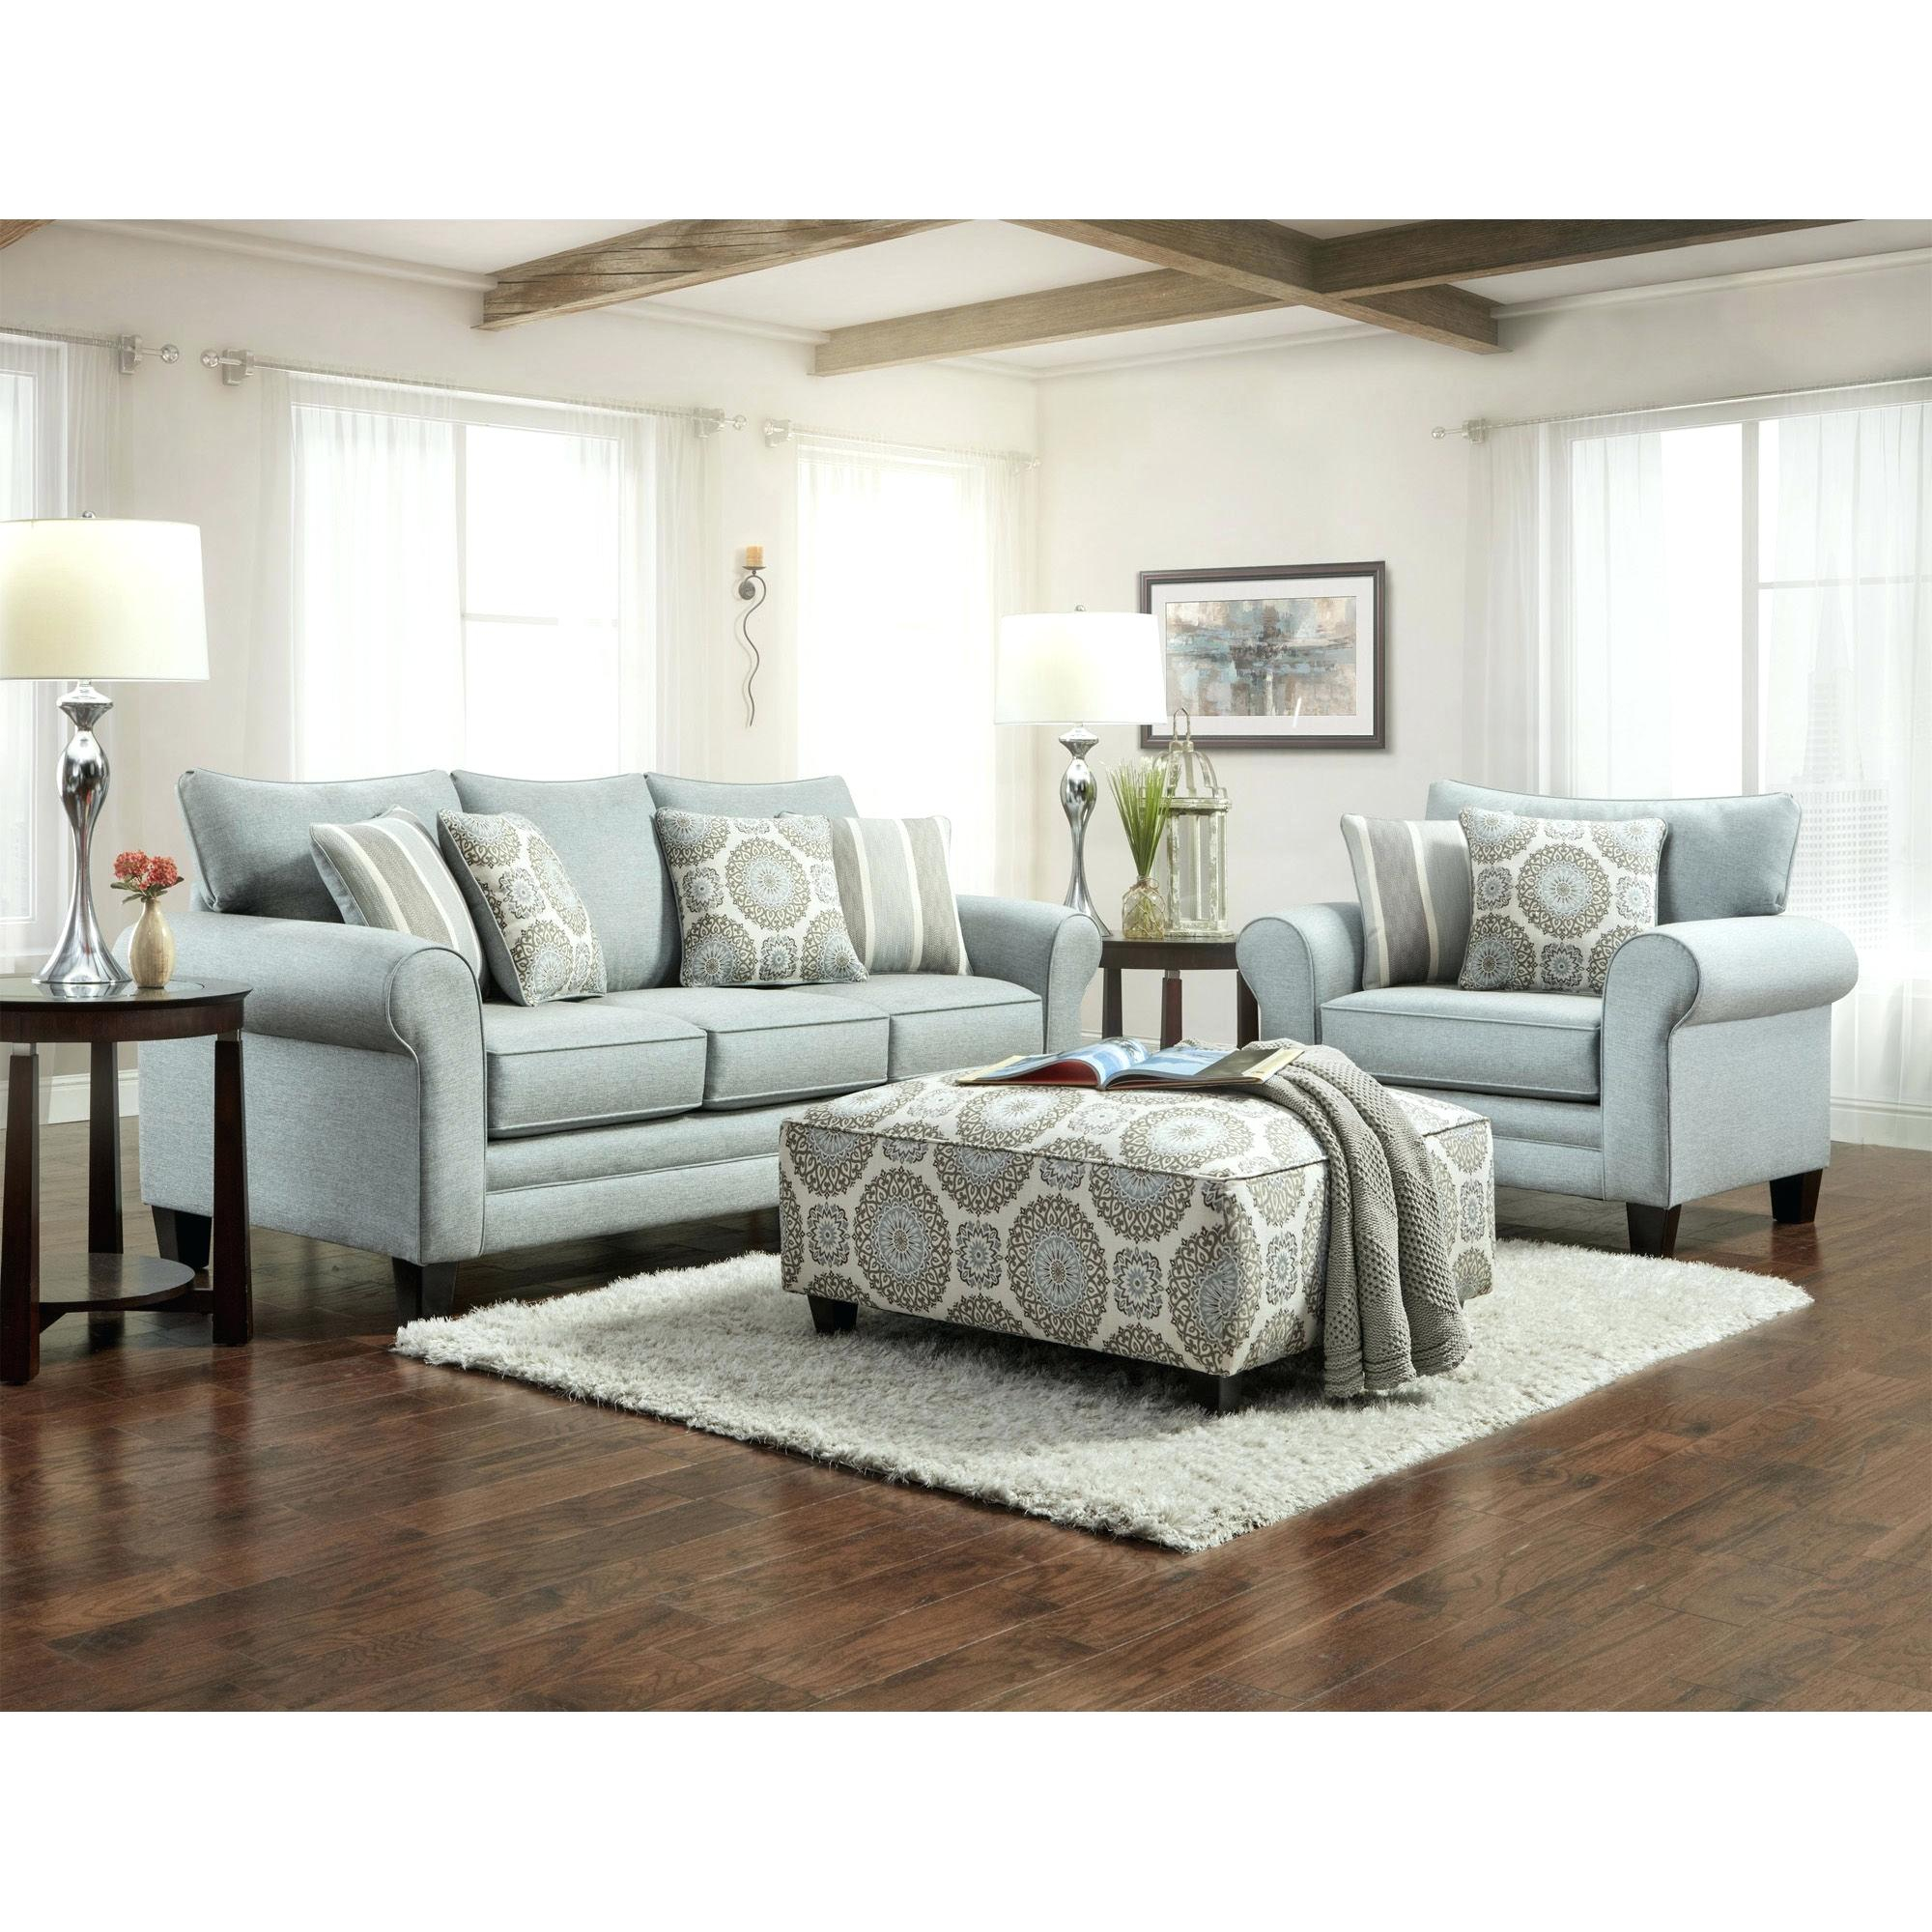 3 Piece Living Room Collection With Chair Fusion Furniture Deals regarding 10 Some of the Coolest Ideas How to Improve Living Room Sets On Clearance